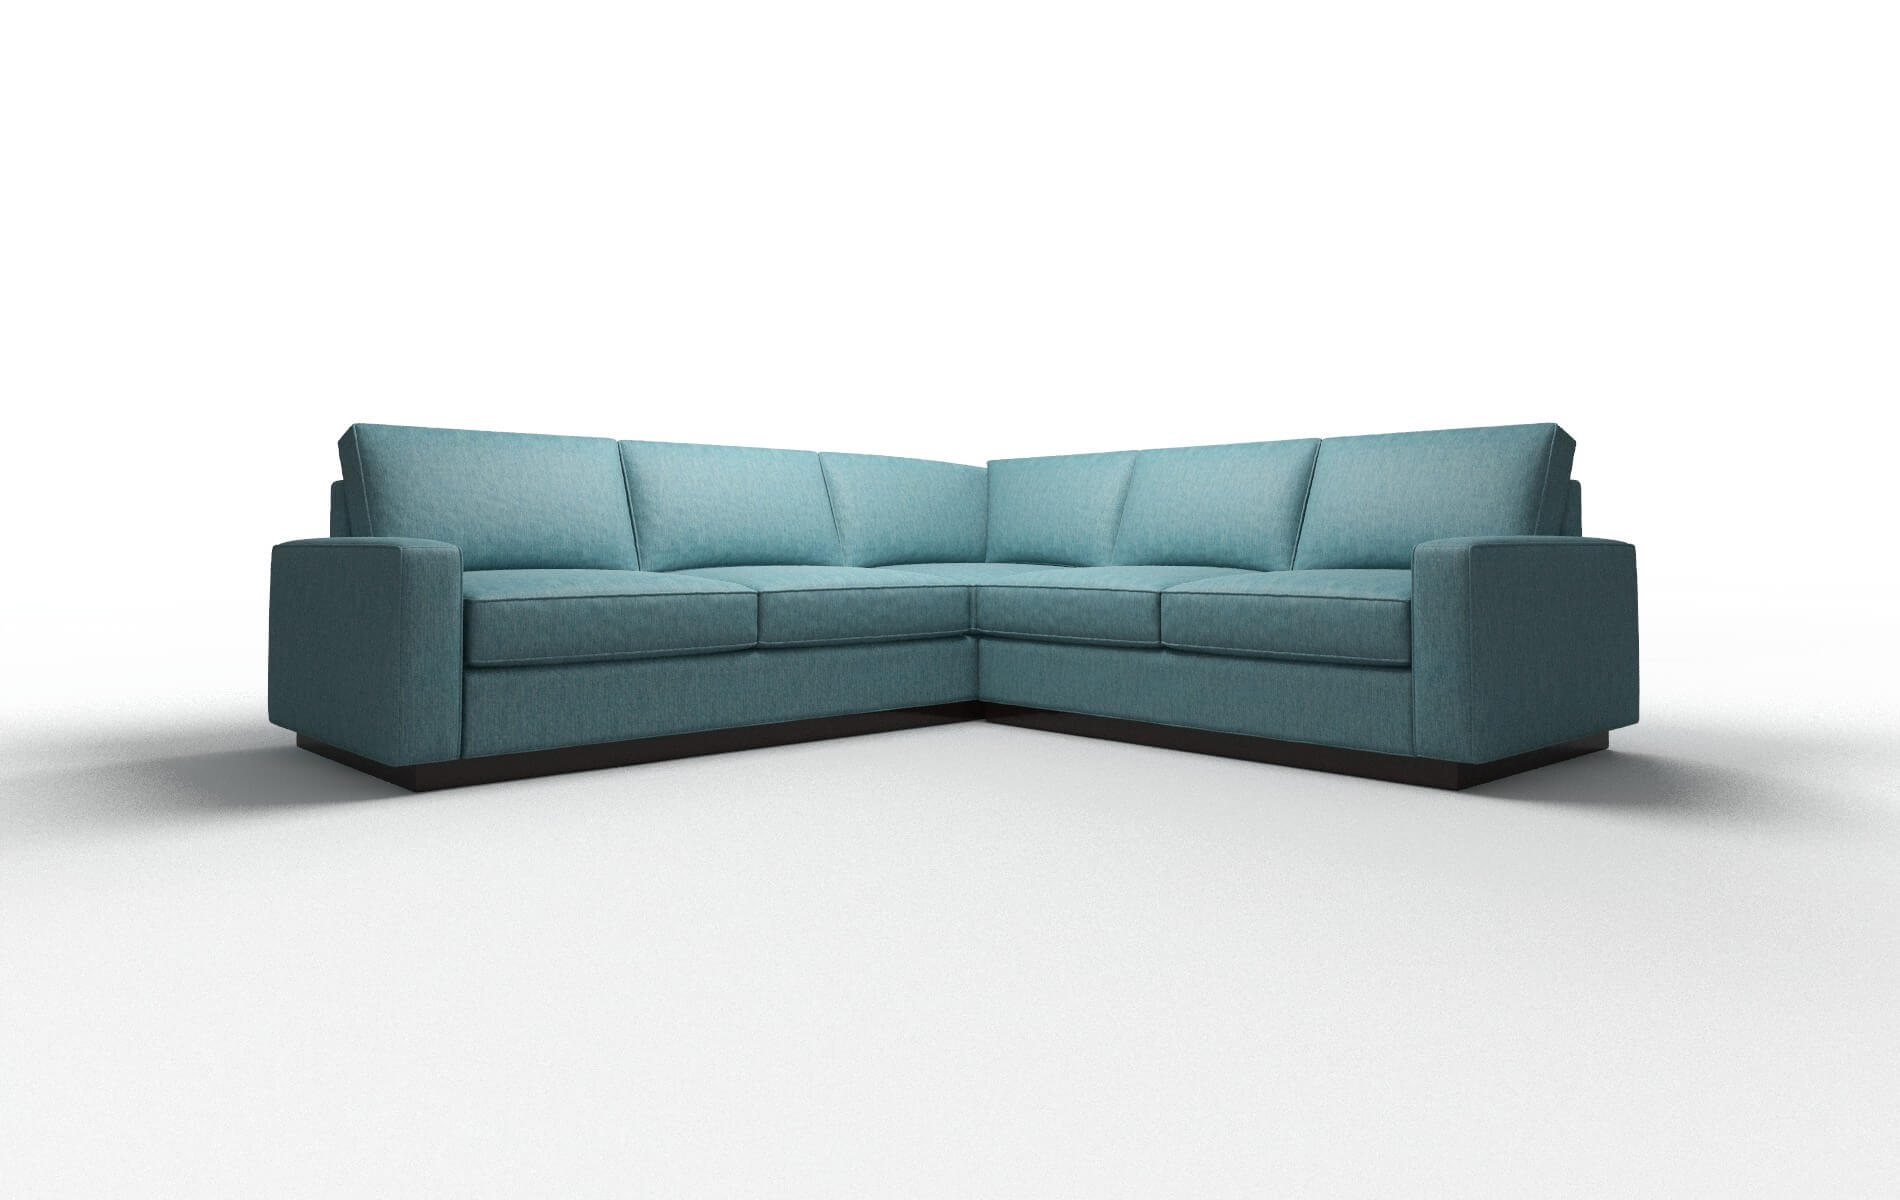 Alton Cosmo Turquoise Sectional espresso legs 1